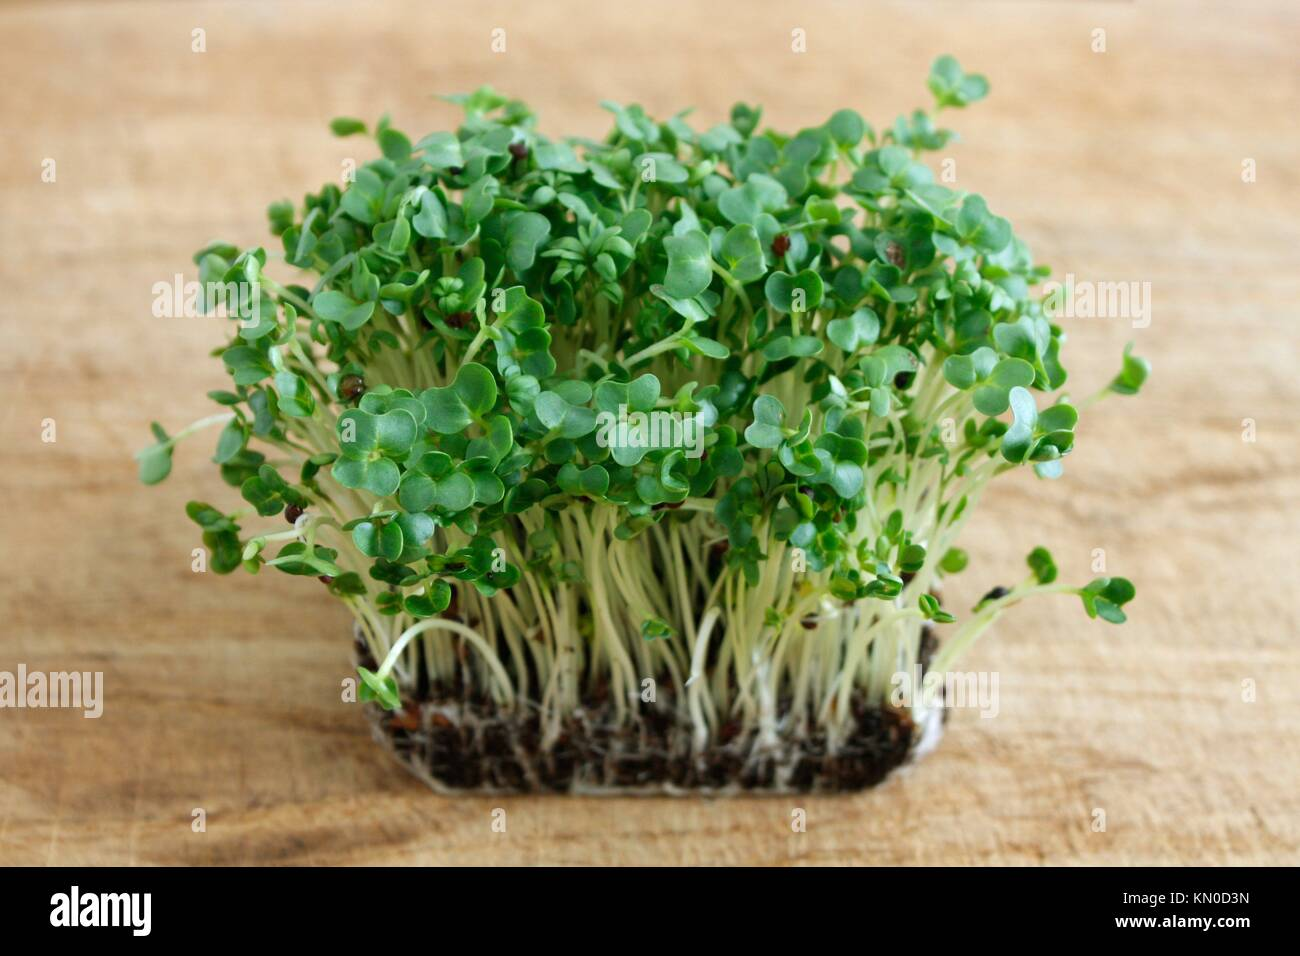 Water cress on a background - Stock Image